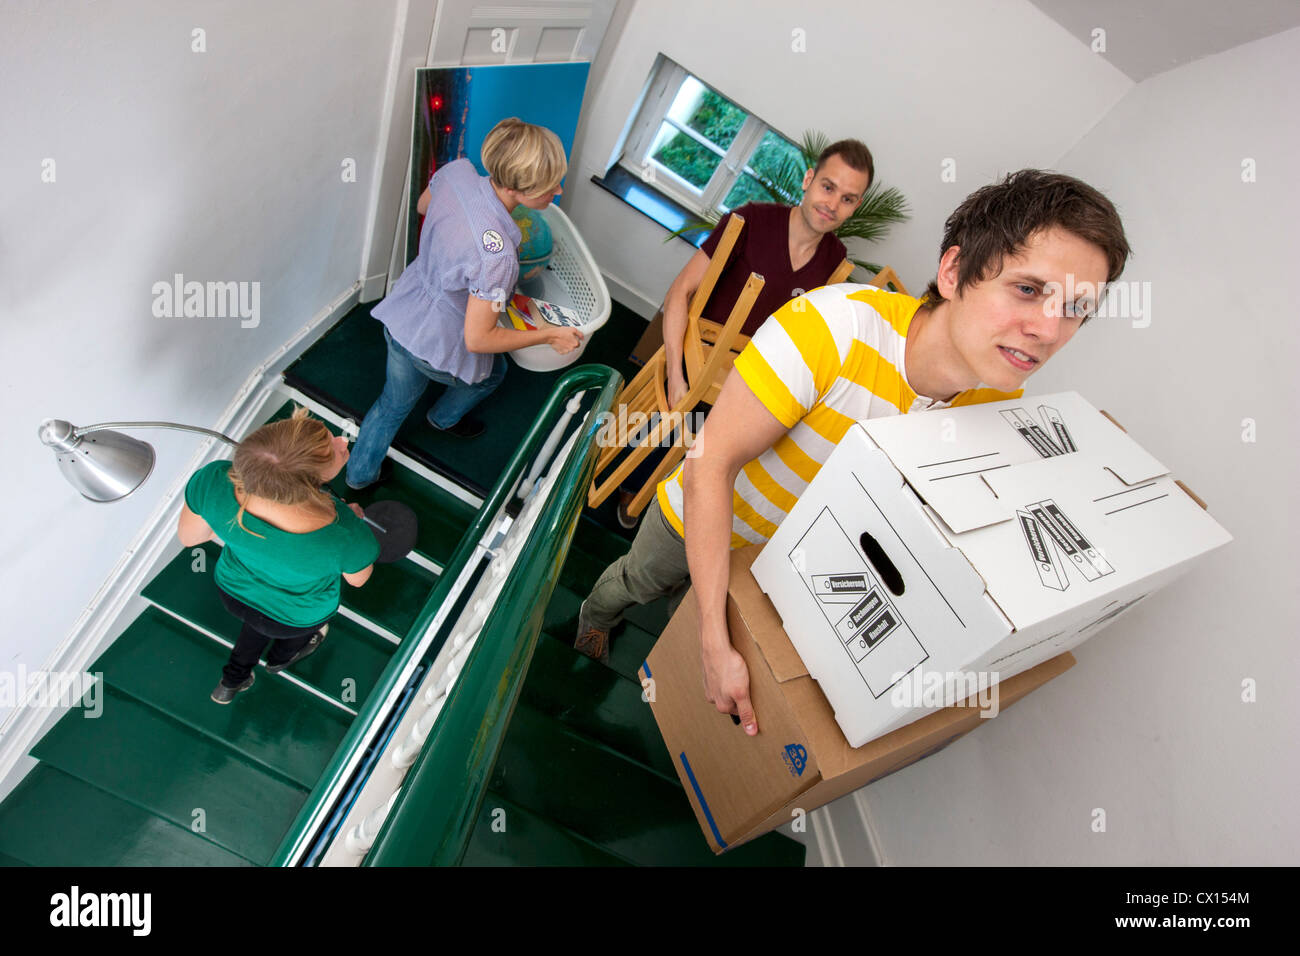 Young People Moving In To A New Apartment Friends Help Carrying